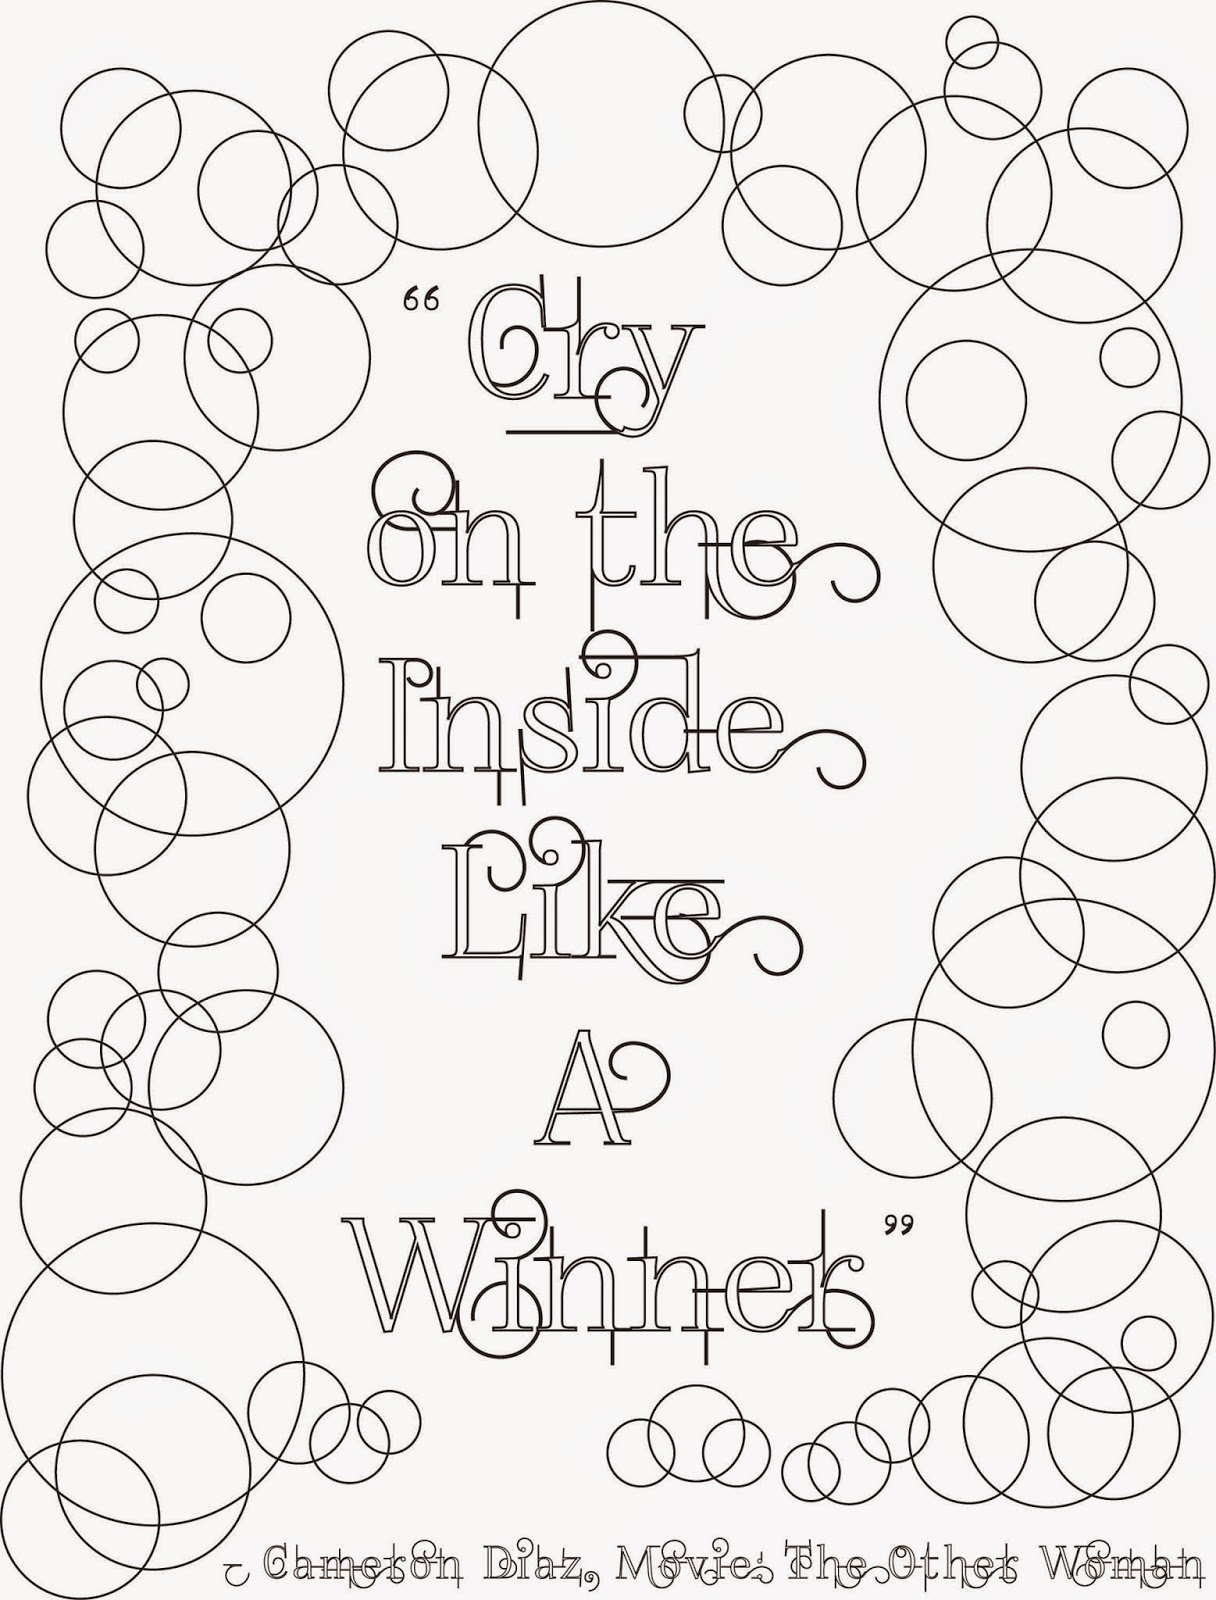 cry on the inside, adult coloring page, stefanie girard, quote, lettering type, bubbles